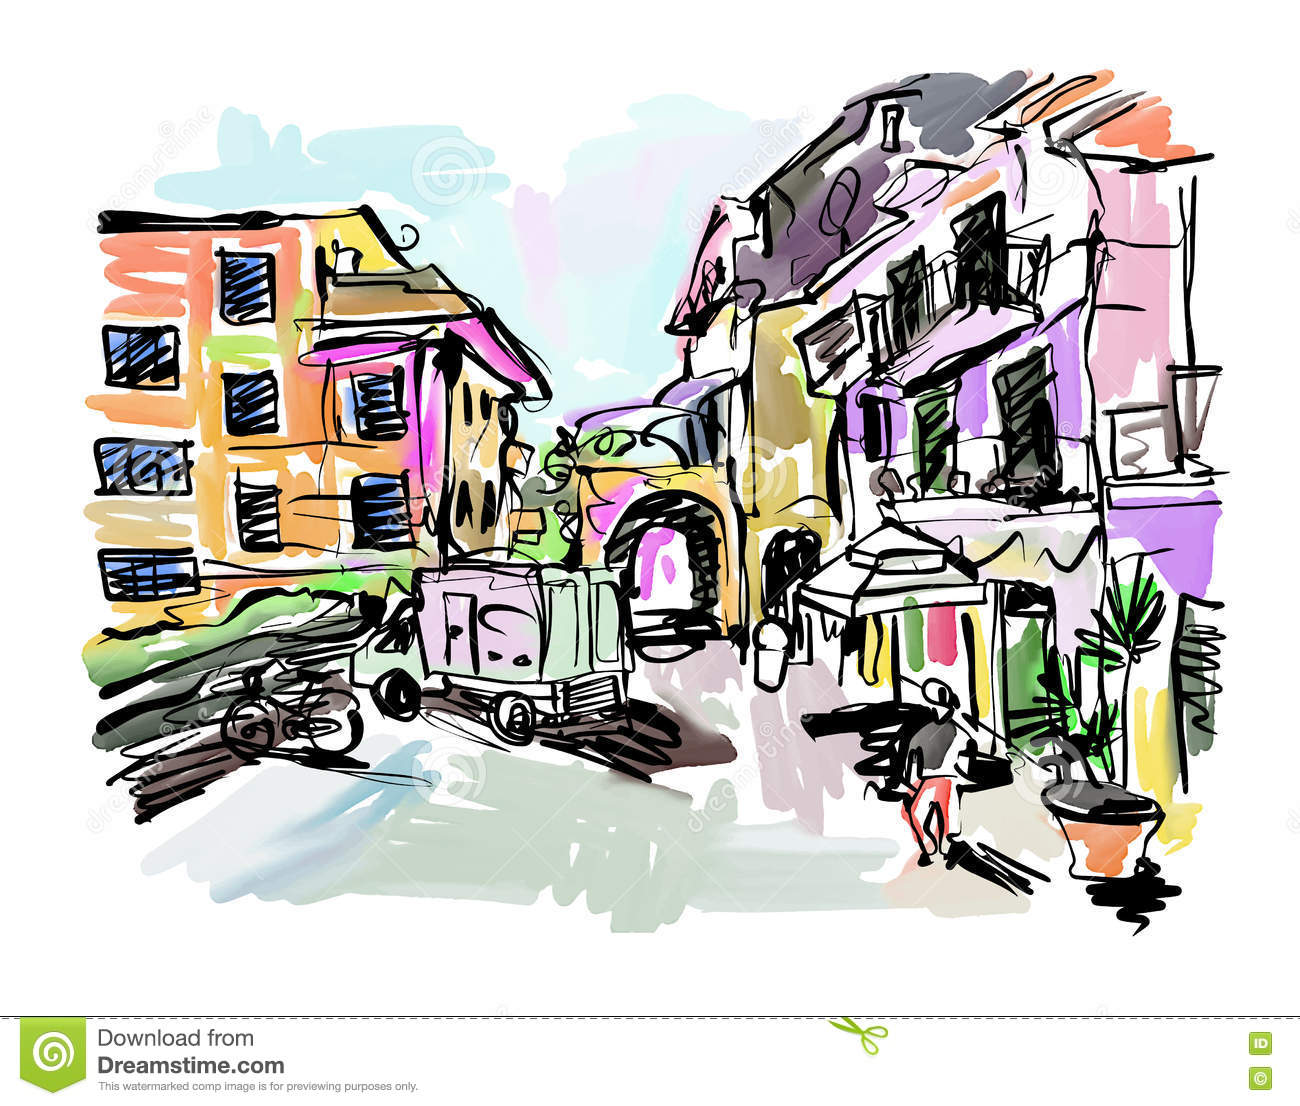 Drawing village stock illustrations 17432 drawing village stock illustrations vectors clipart dreamstime